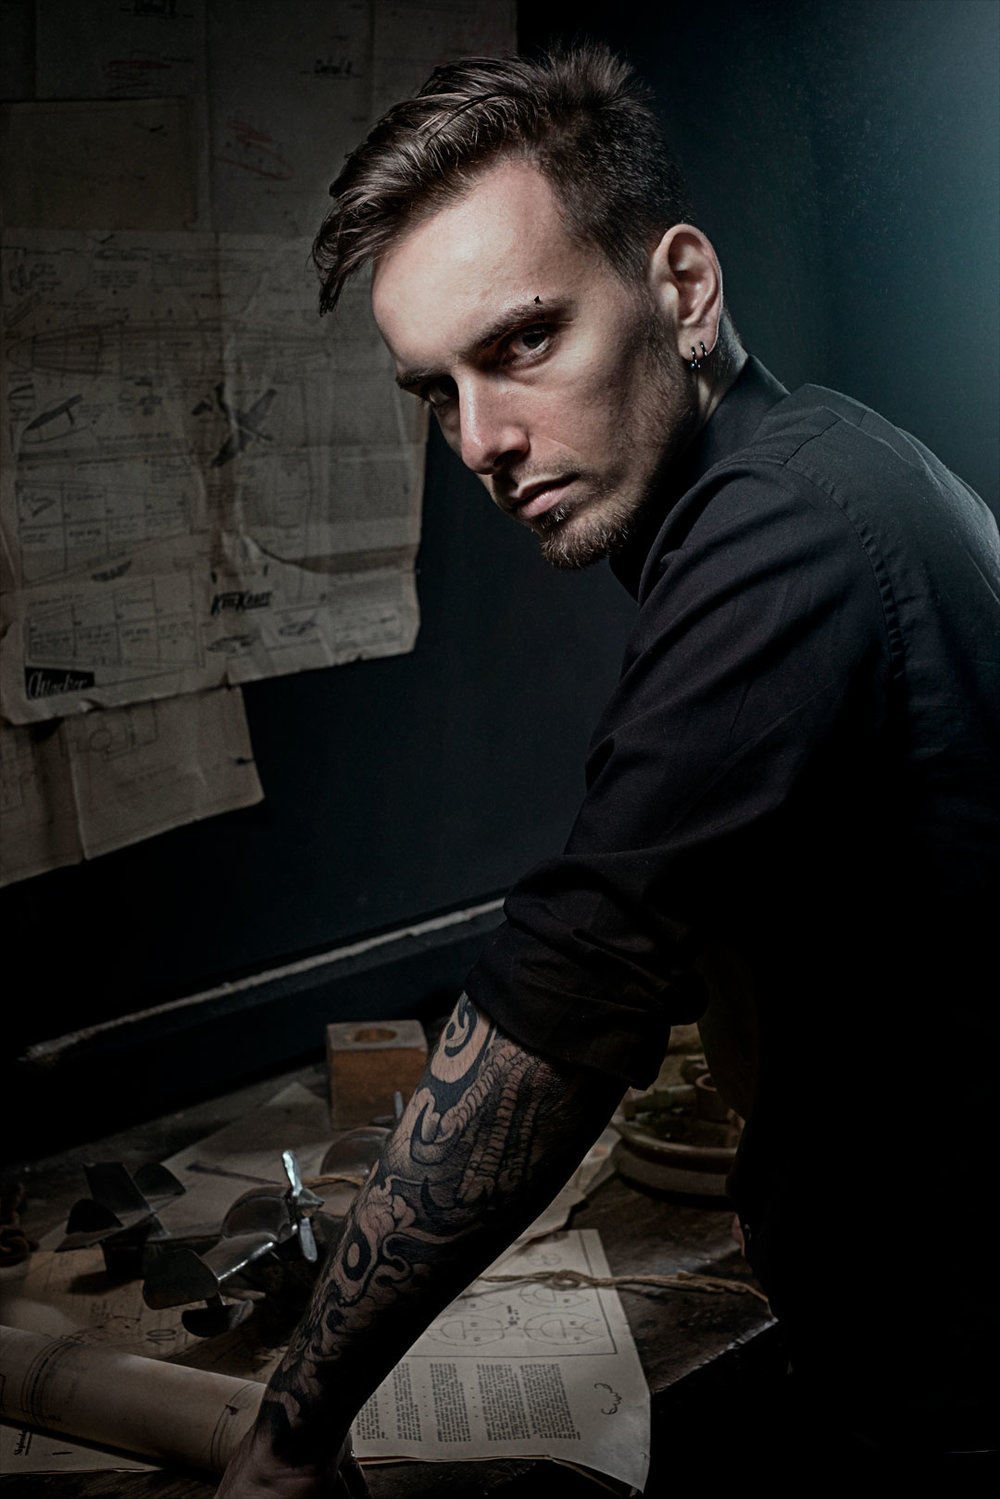 SITE-photo-band-metal-portrait_andre02 by .